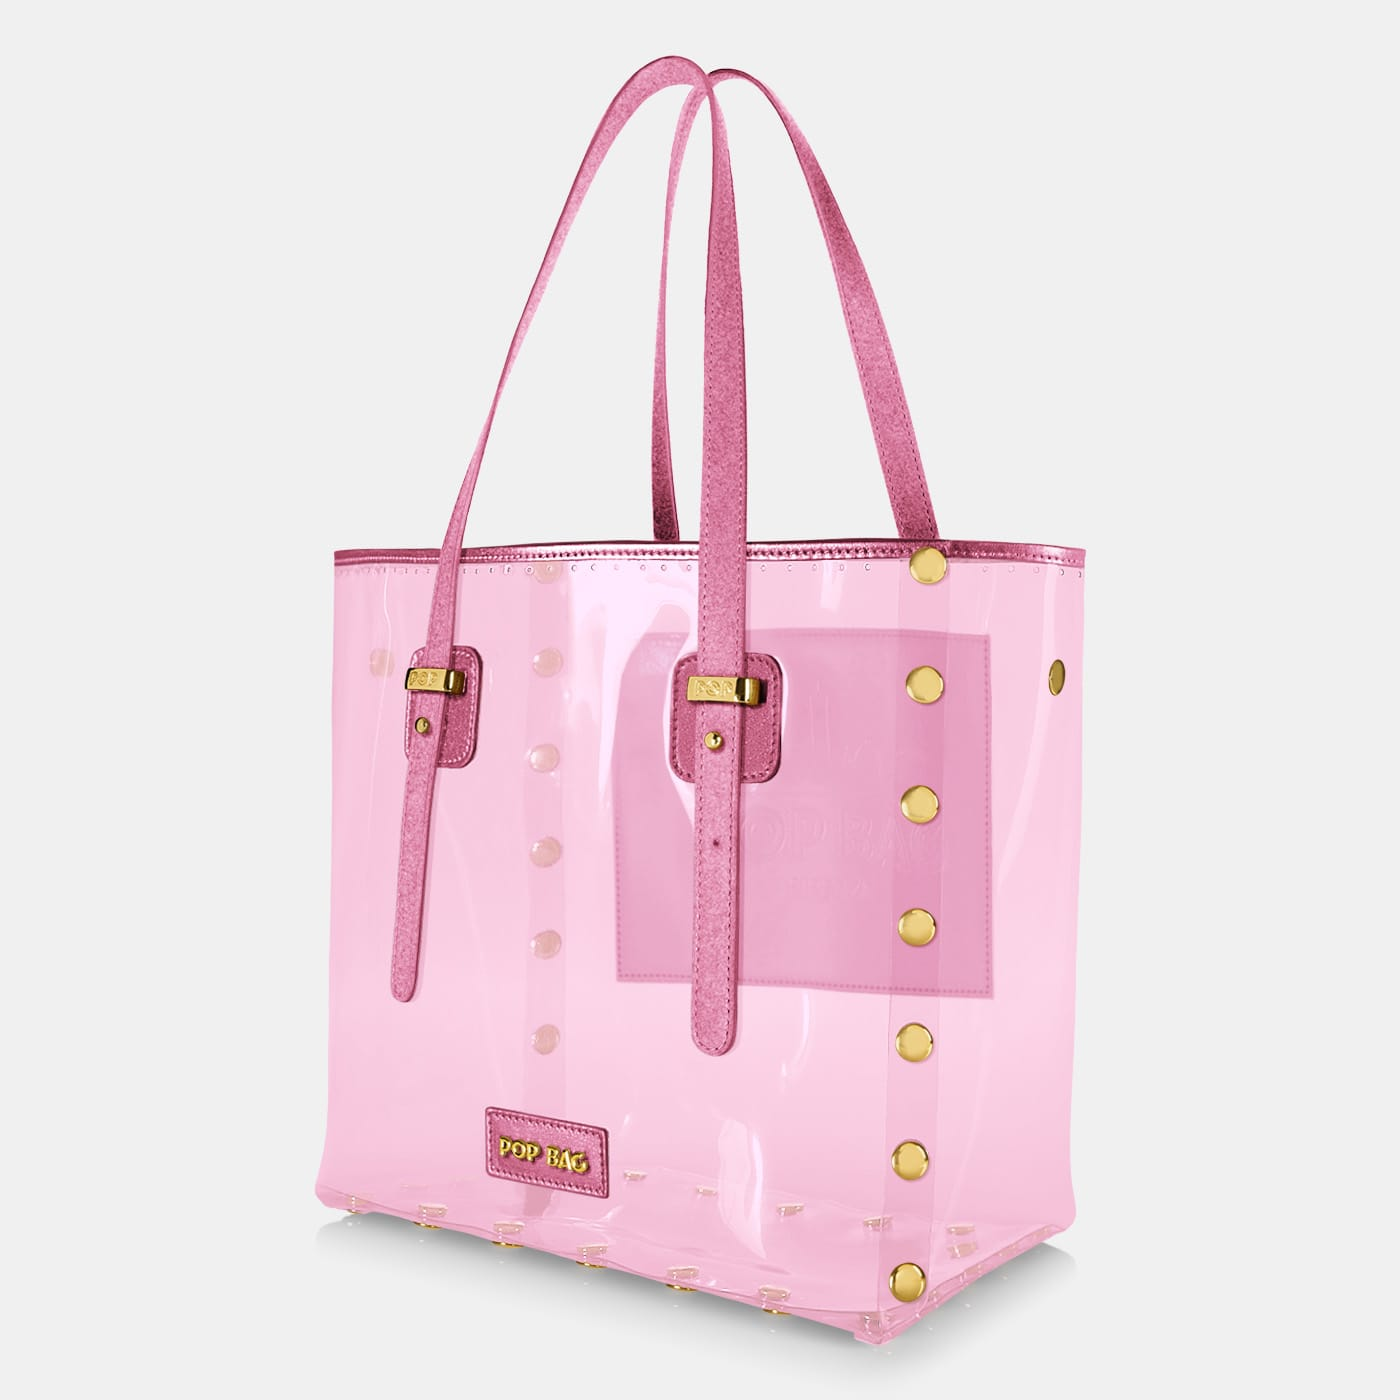 Pop Crystal Bag - Pink - Large - Side View